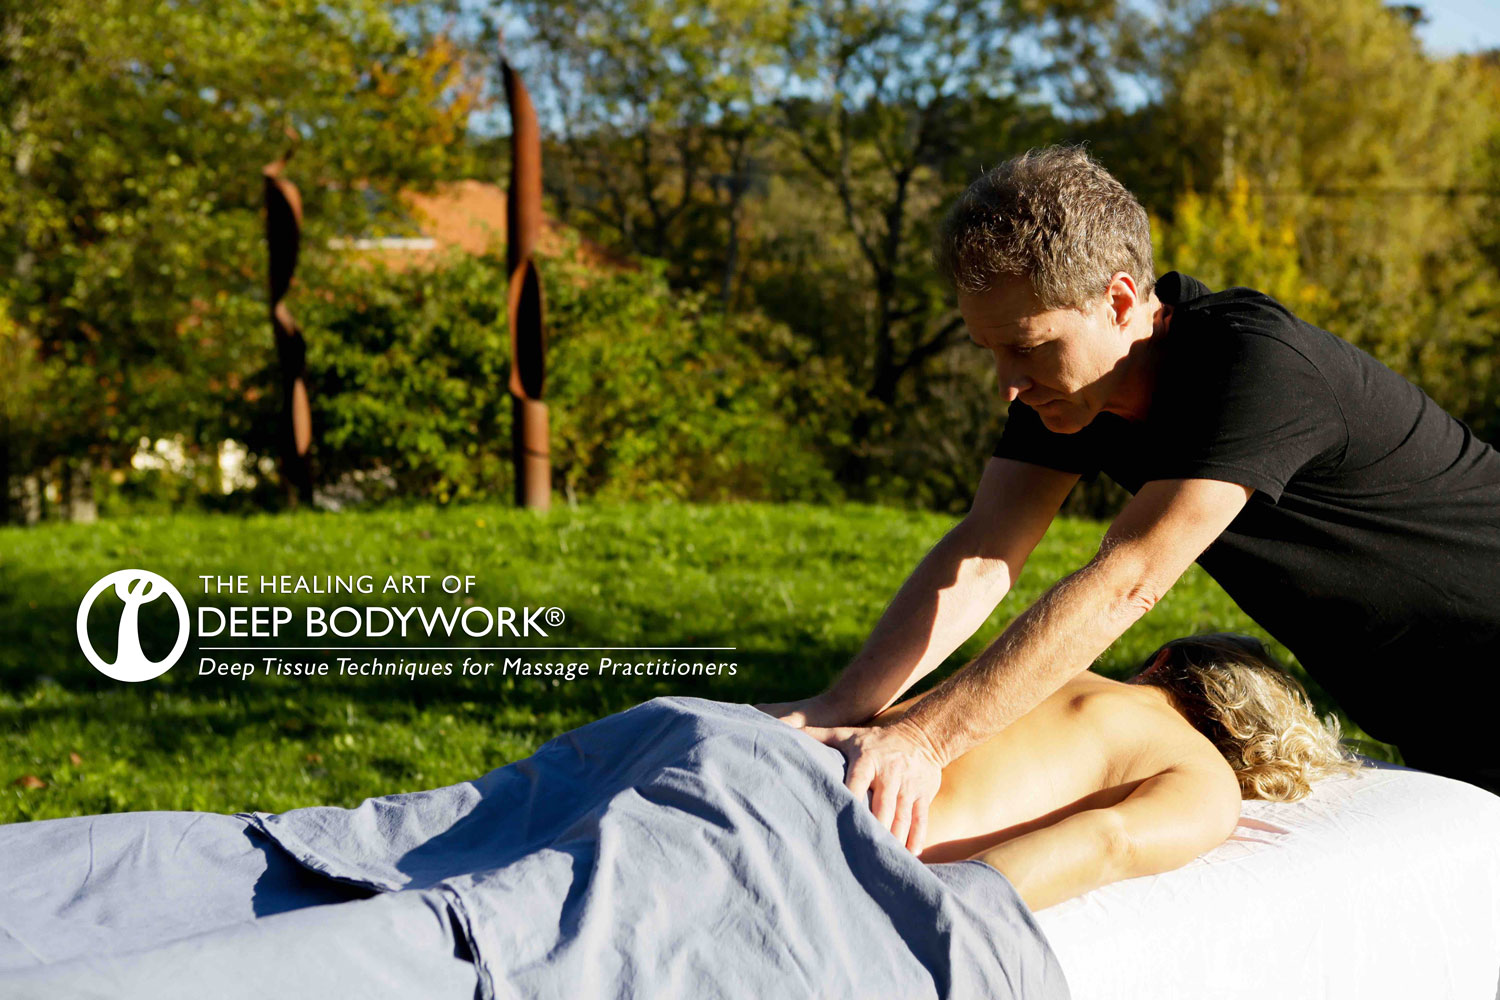 The Healing Art of Deep Bodywork: I